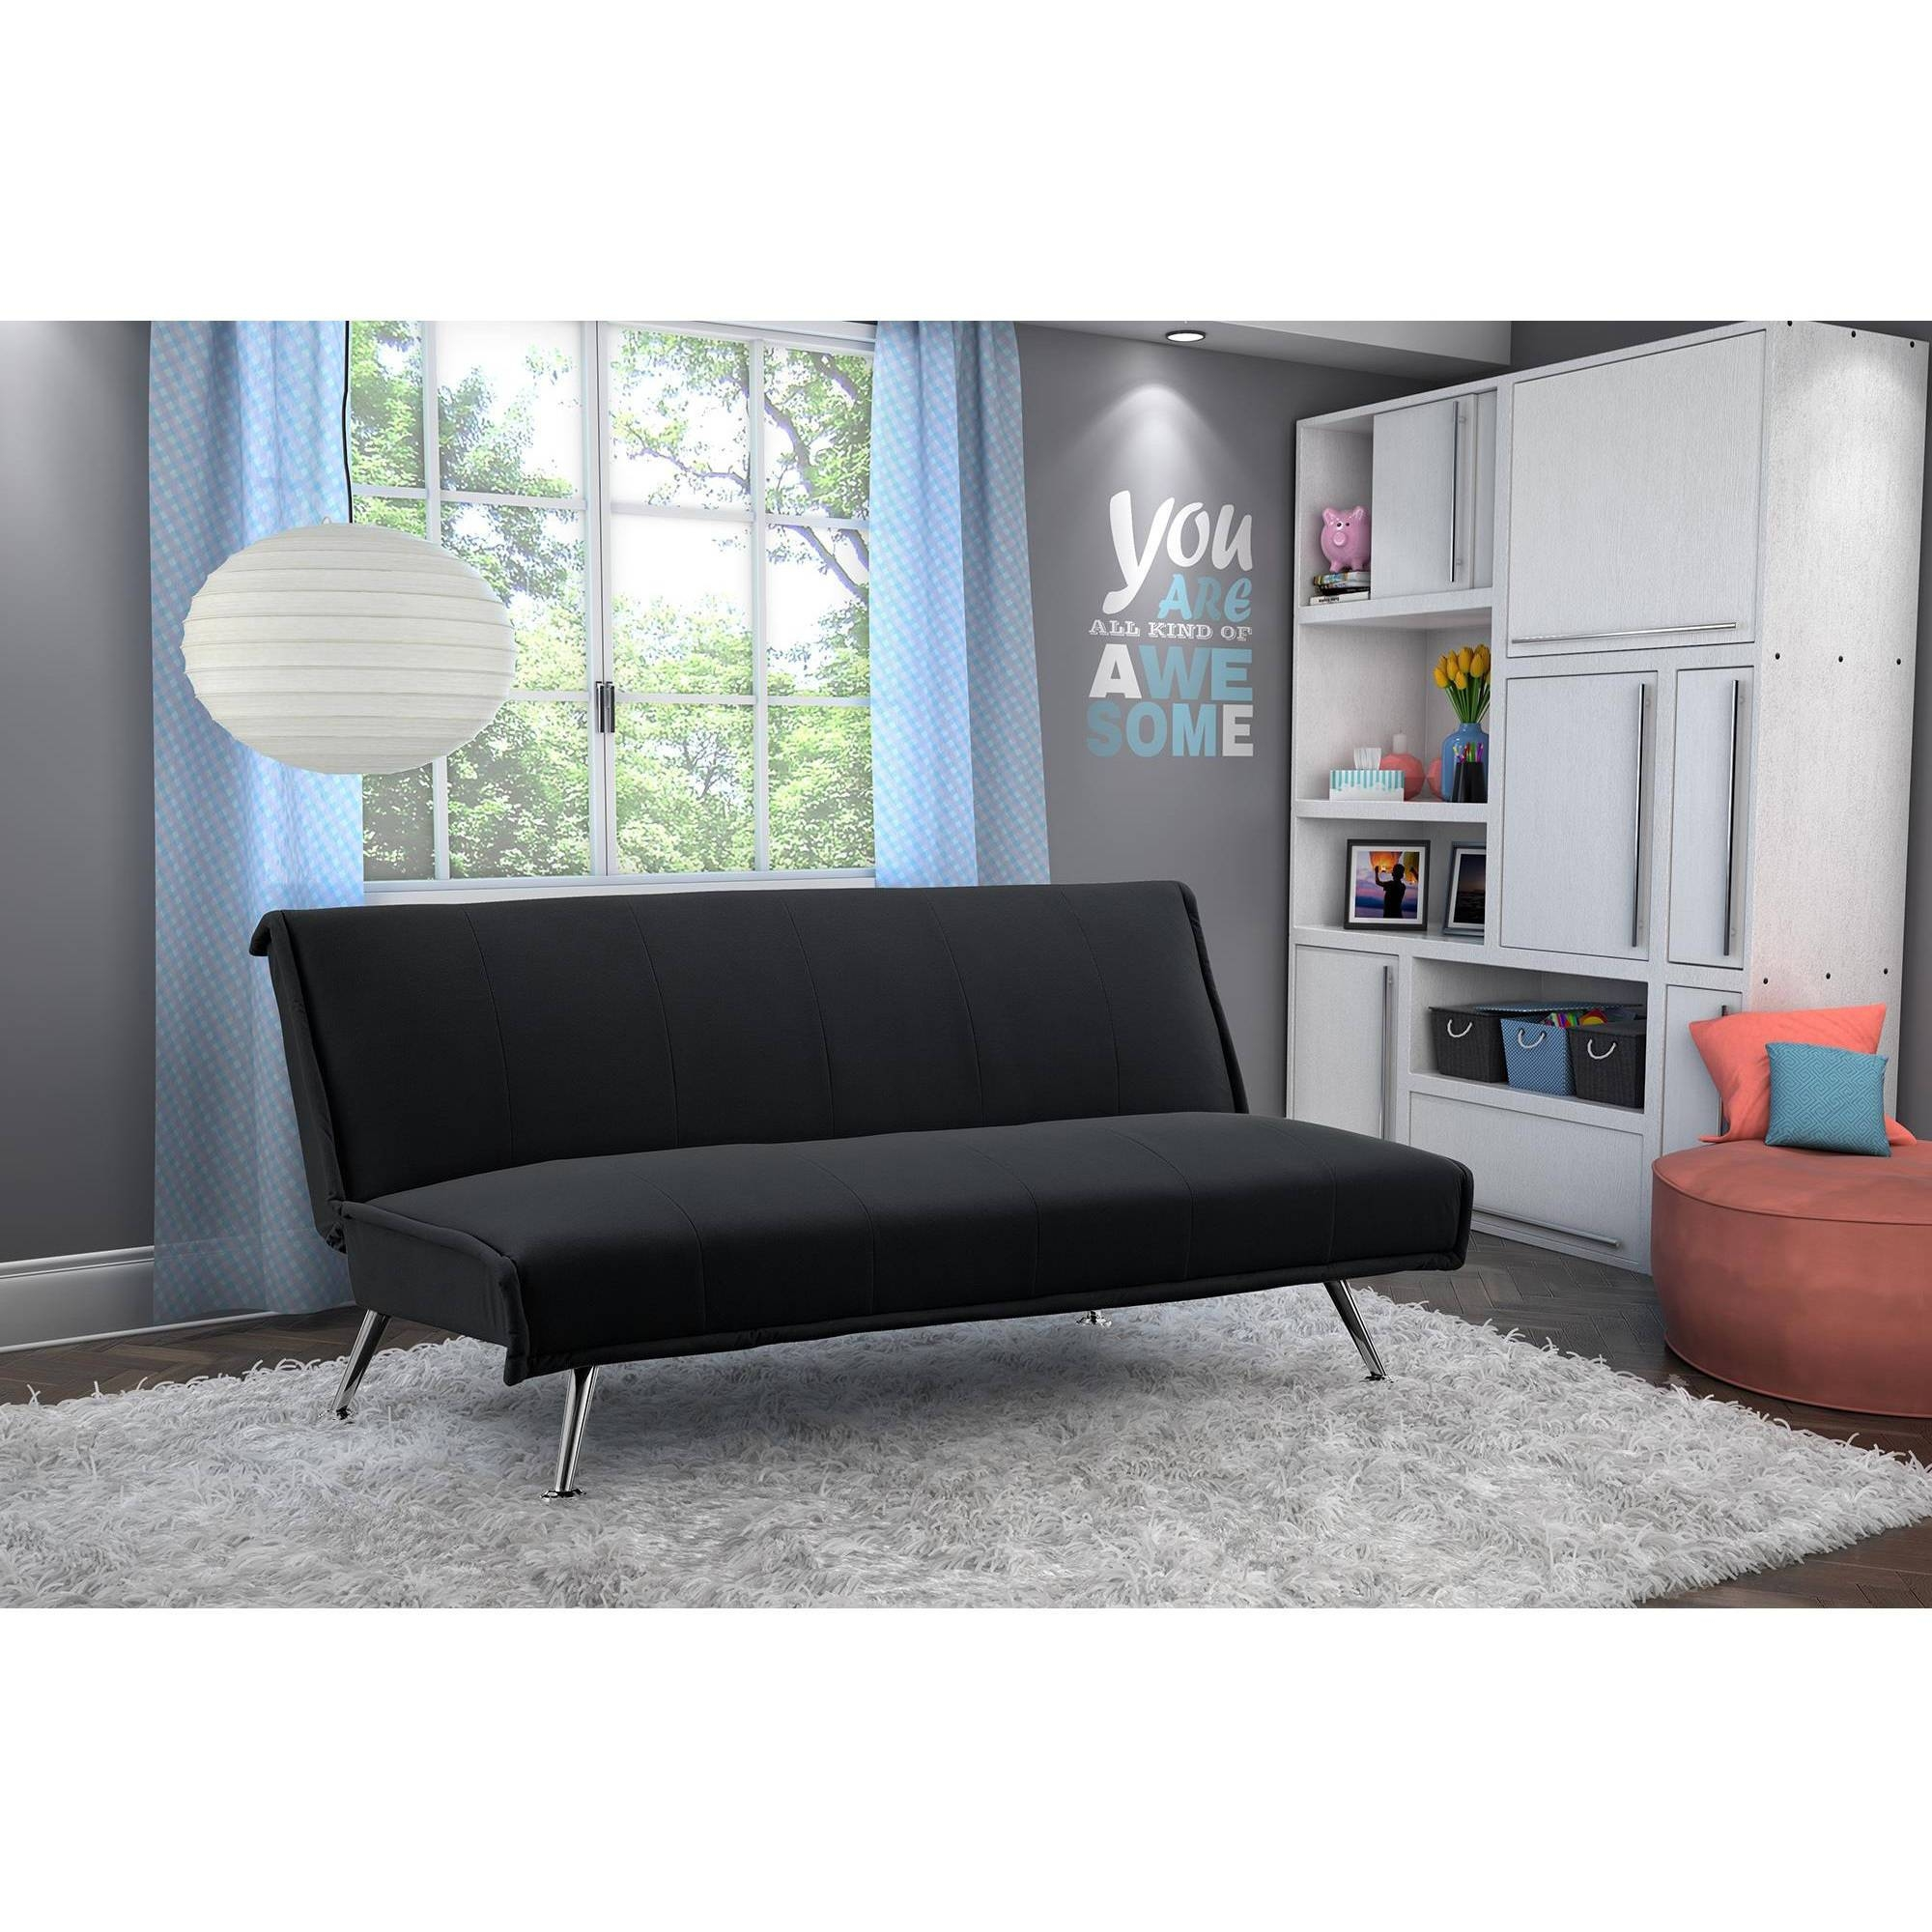 Www.bunscoilaniuir/s/2016/12/sectional-Walmart within Compact Sectional Sofas (Image 14 of 30)